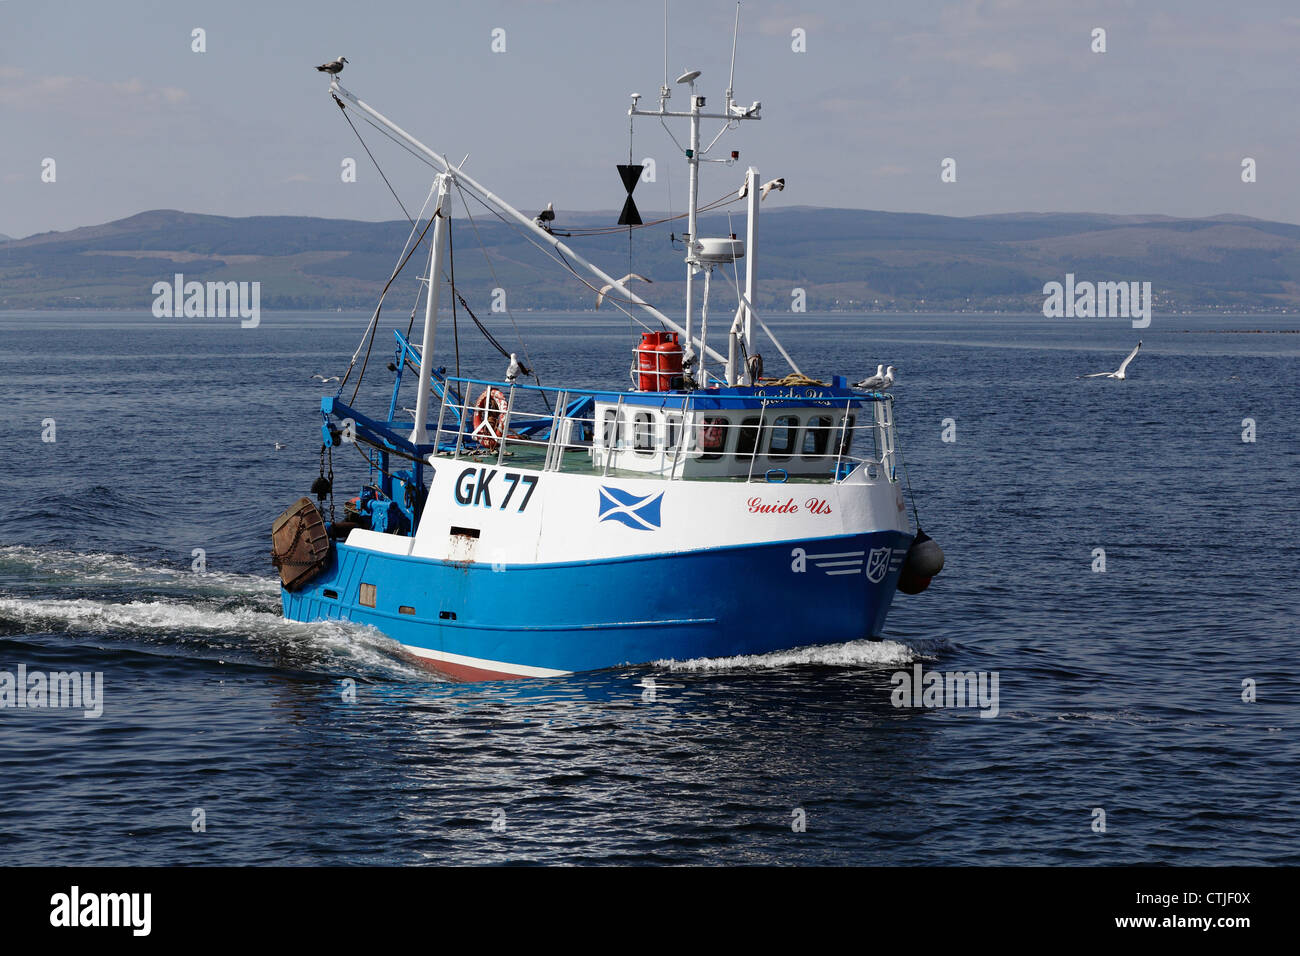 Small fishing boat Guide Us sailing in the Firth of Clyde, Ayrshire, Scotland, UK - Stock Image